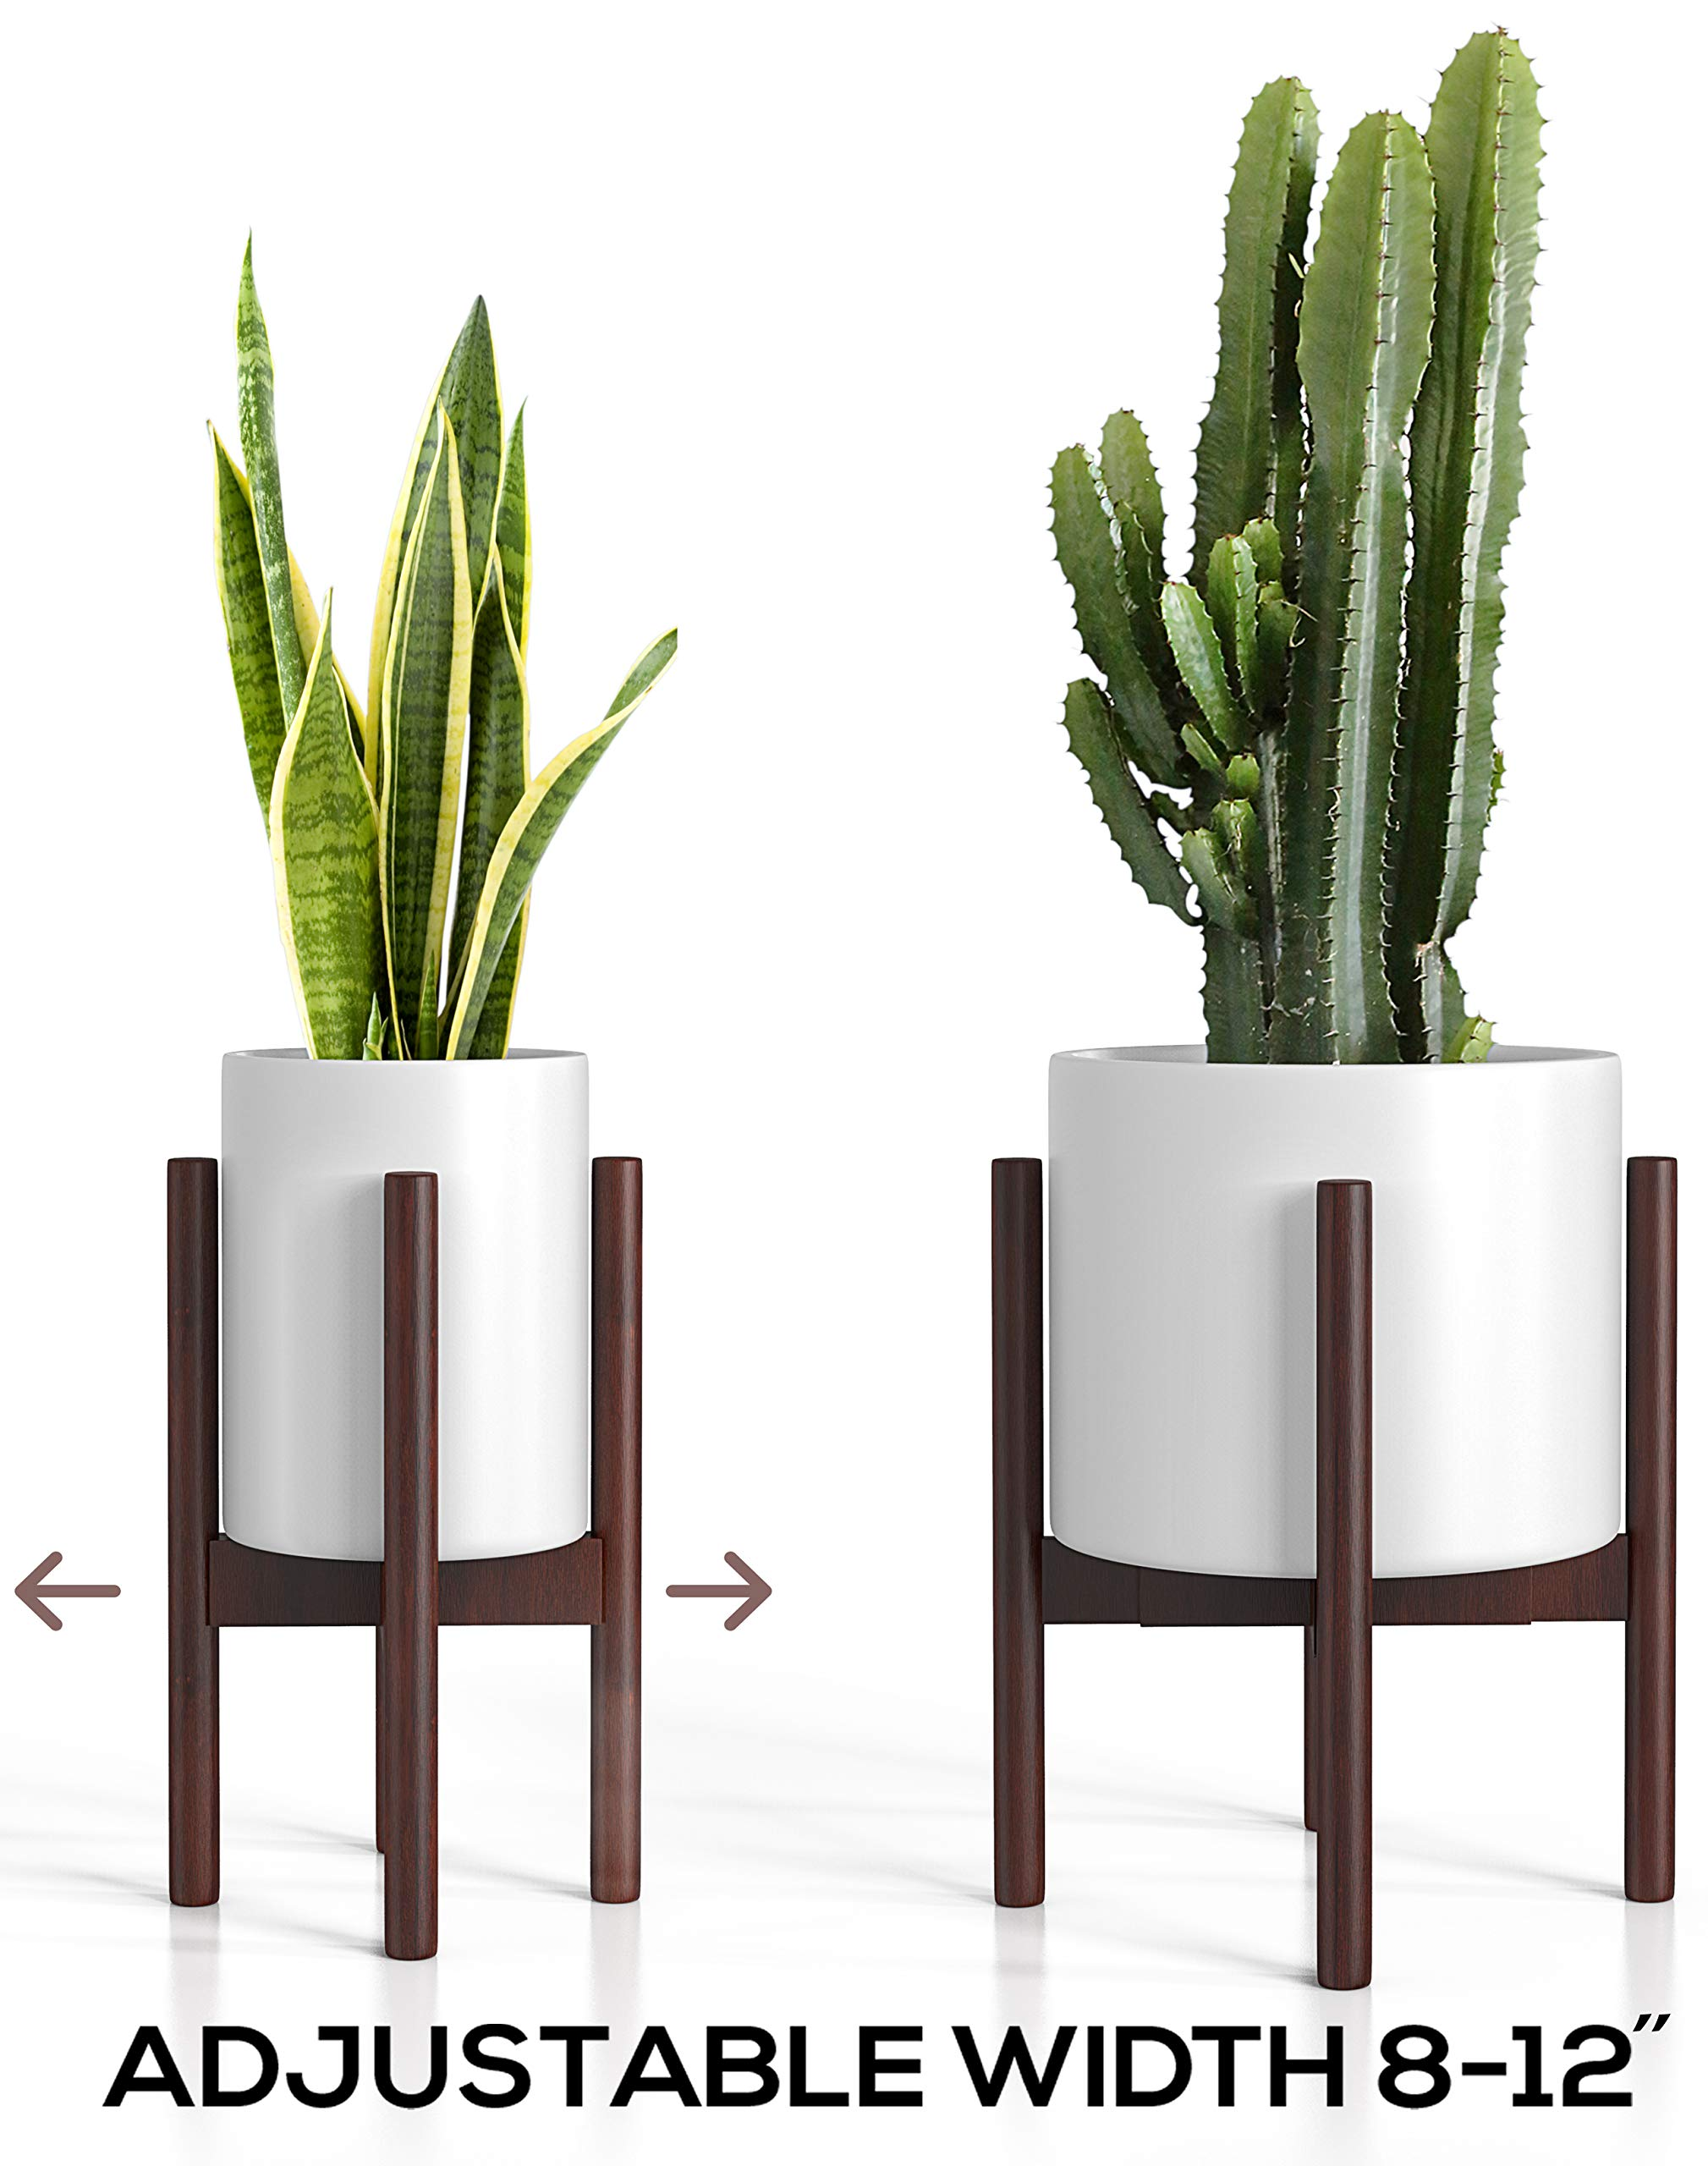 Mid Century Plant Stand - Adjustable Modern Indoor Plant Holder - Brown Planter Fits Medium & Large Pots Sizes 8 9 10 11 12 inches (Not Included) (Adjustable Width: 8-12'' x 16'' Tall, Dark Brown) by Mid Century Plant Stand